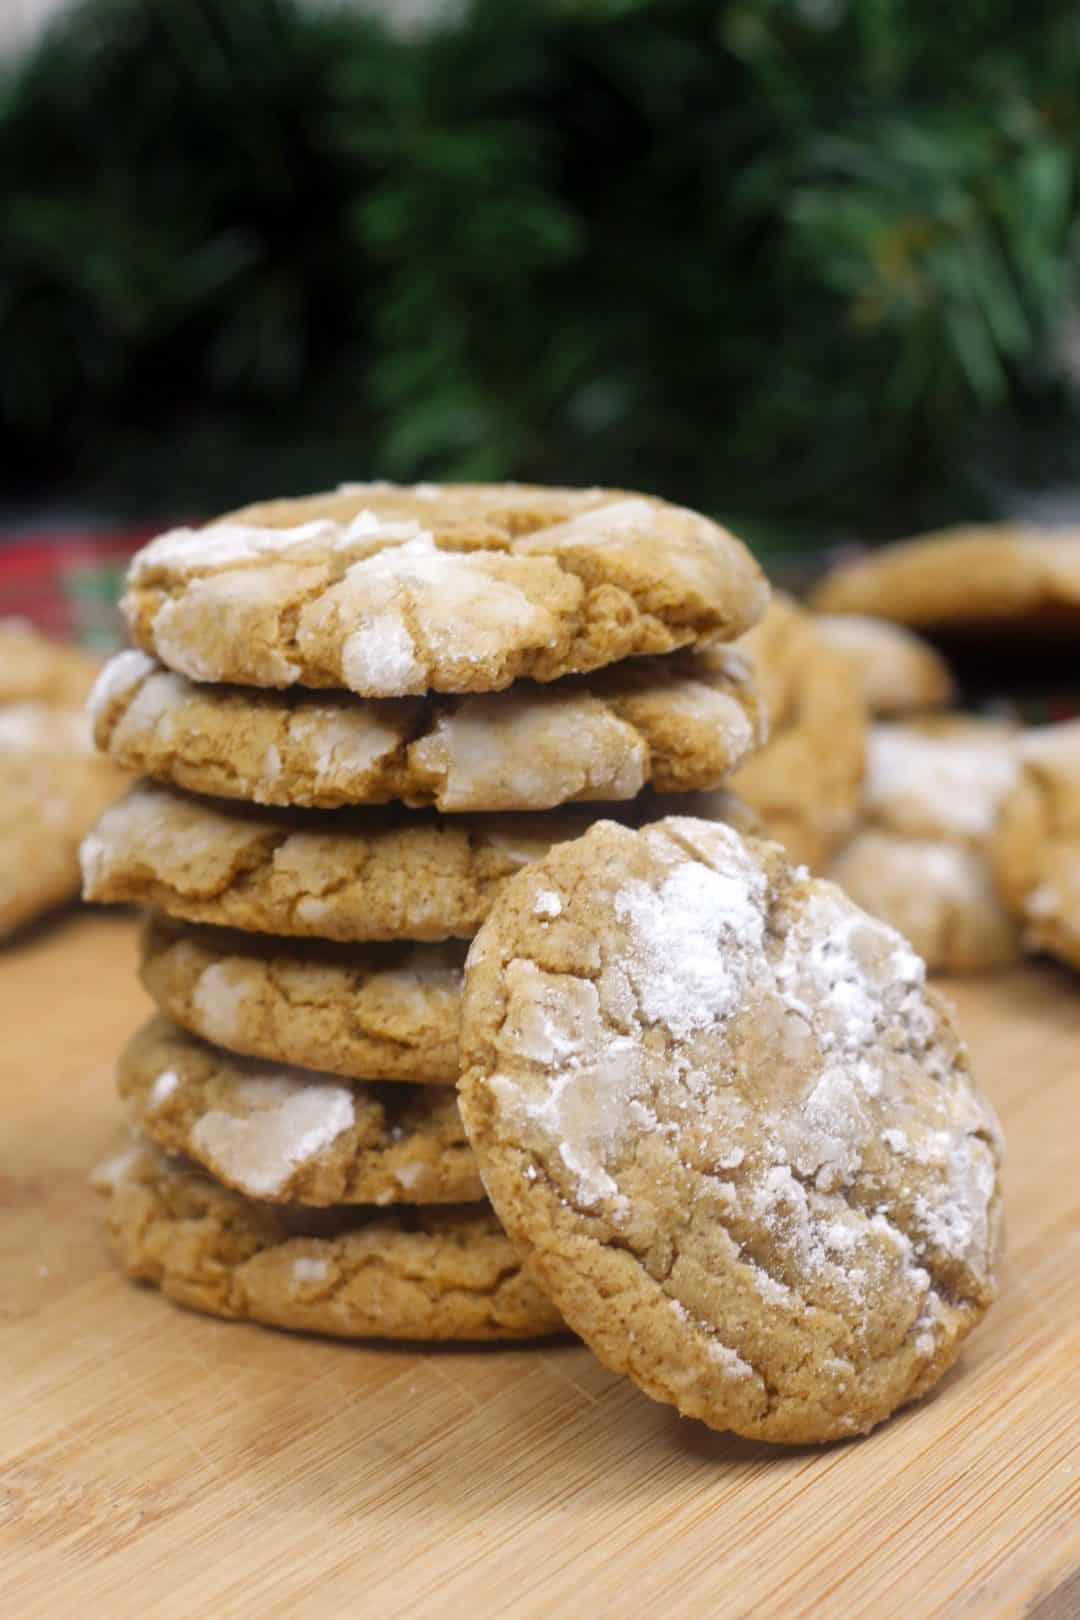 Stack of Gingerbread cookies on a wooden surface